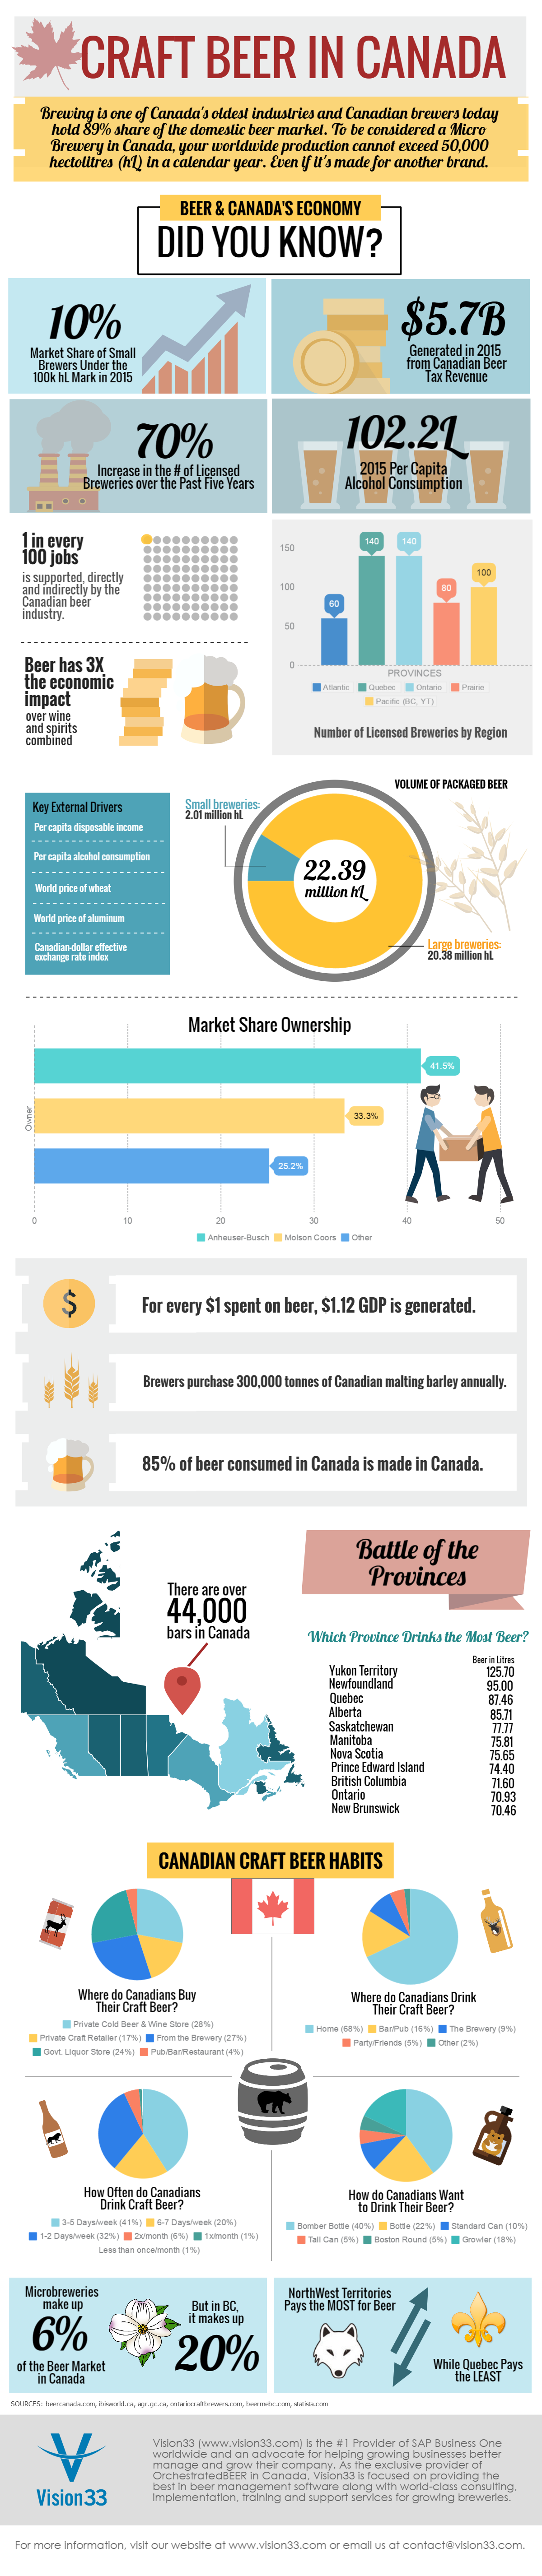 Craft Beer in Canada - Industry Infographic